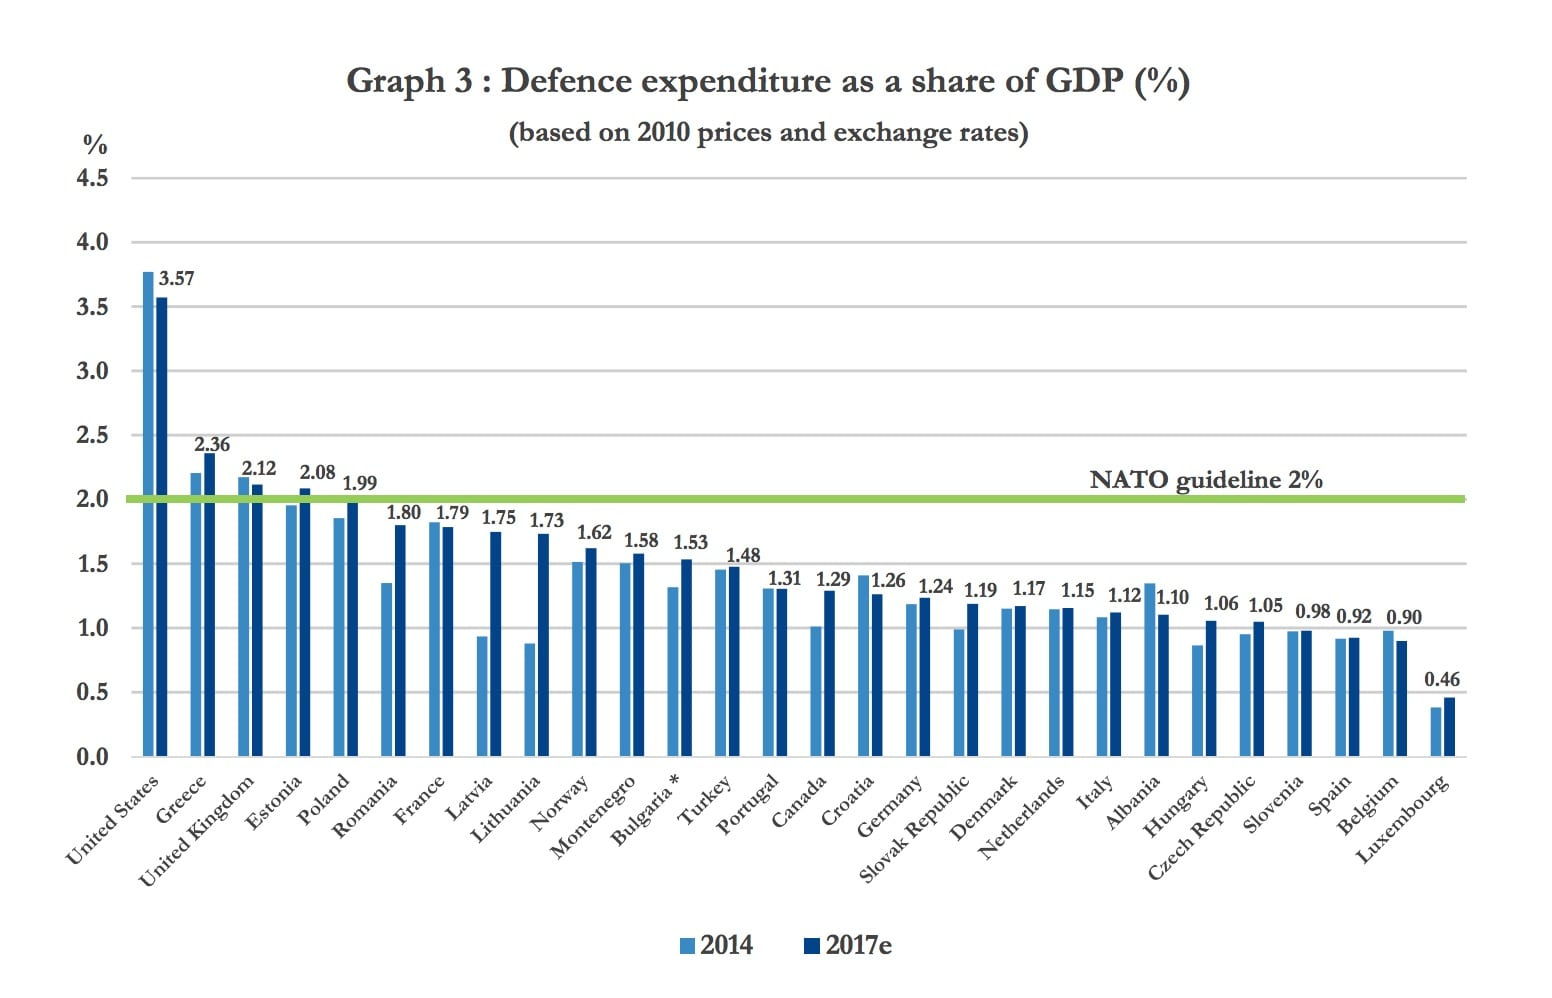 Image graph NATO graph Defence expenditure as a share of GDP